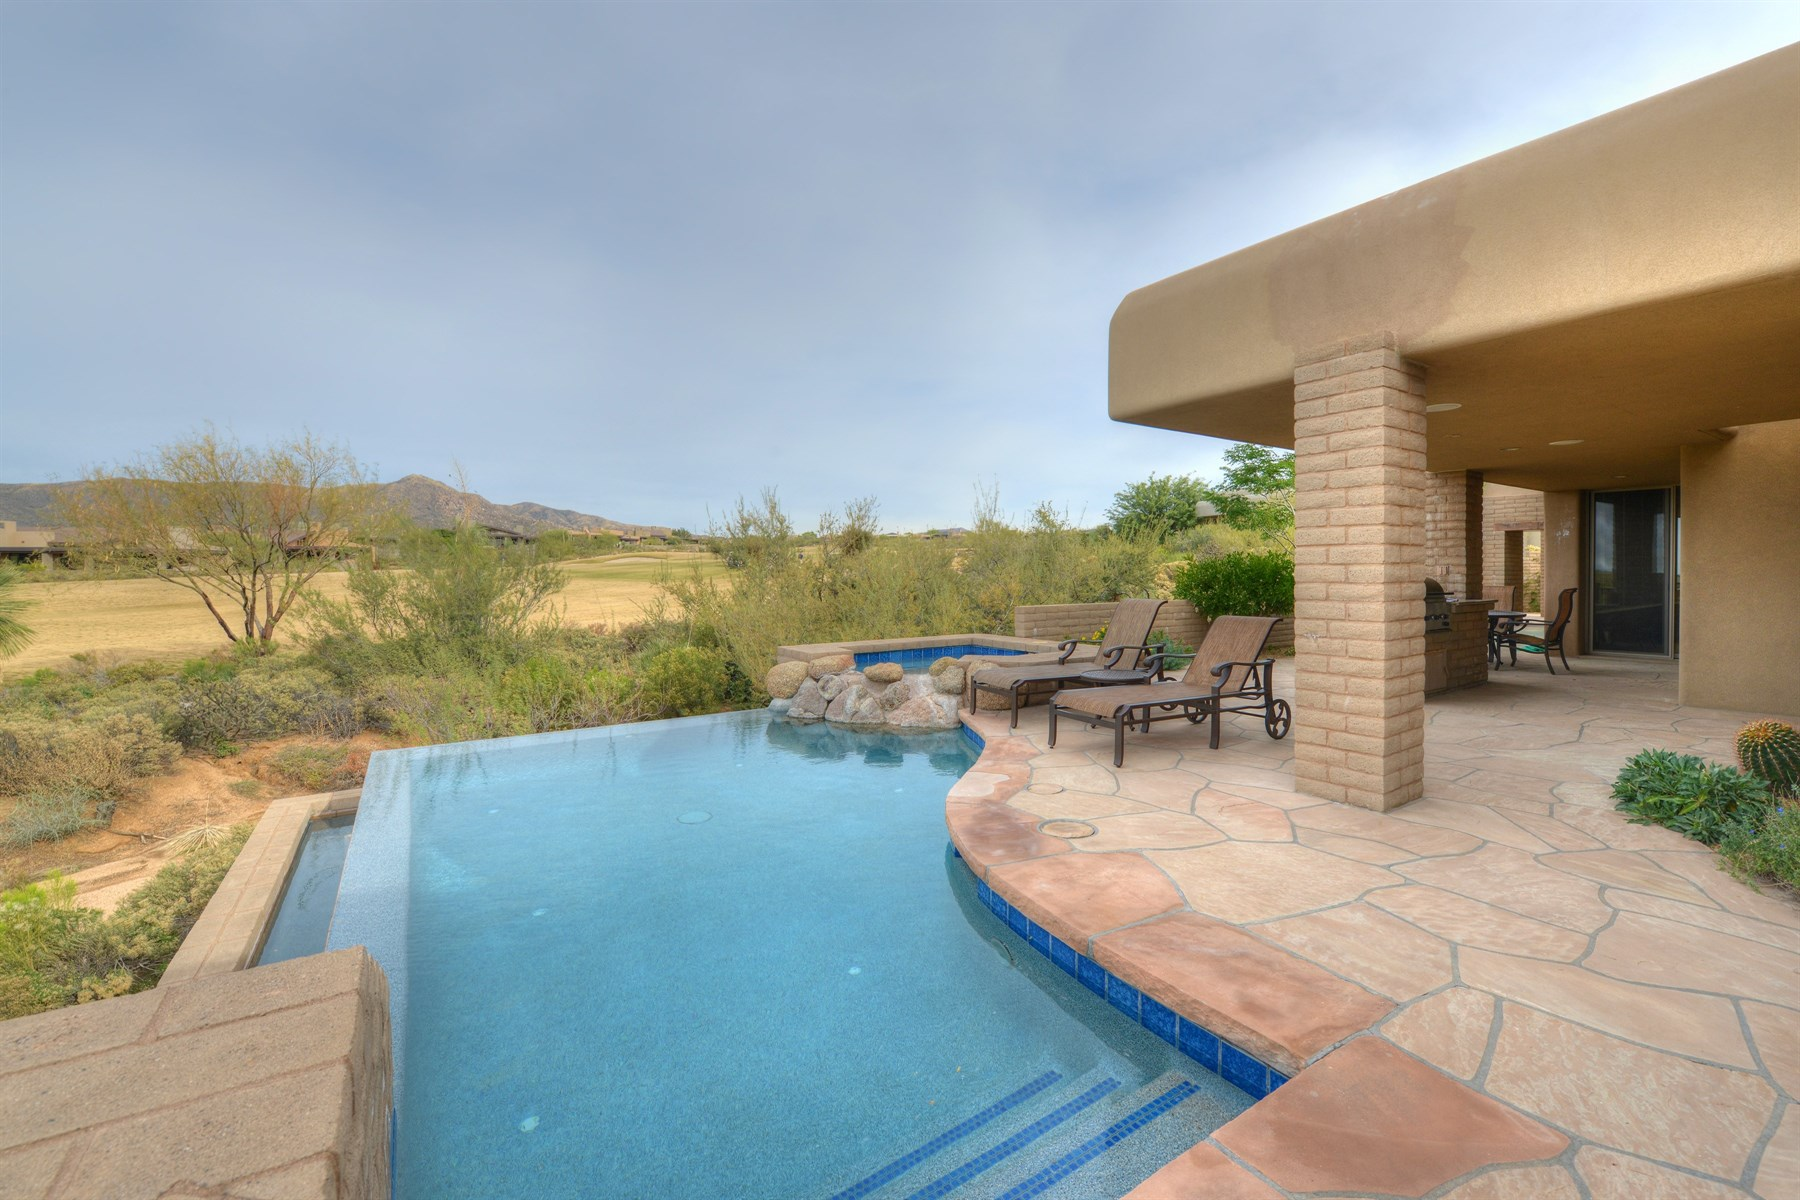 rentals property at Fabulous Home Located On The 8th Hole Of The Apache Golf Course